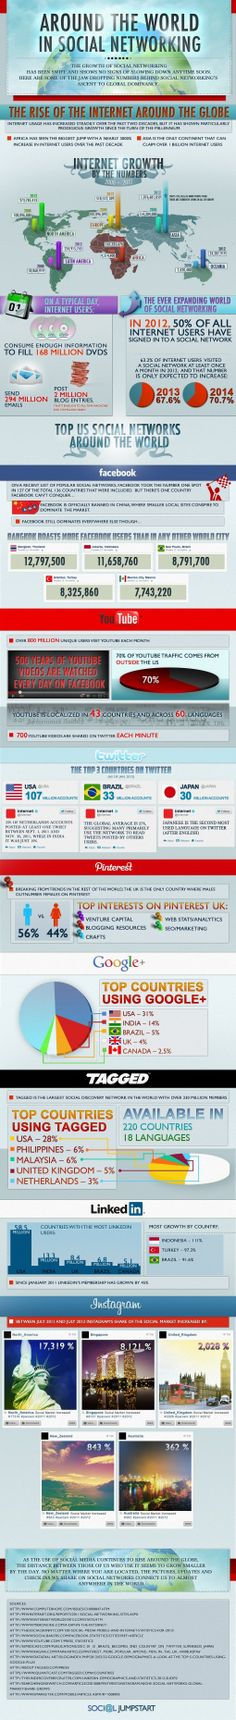 Social Media Around the World: A Complete Infographic Guide